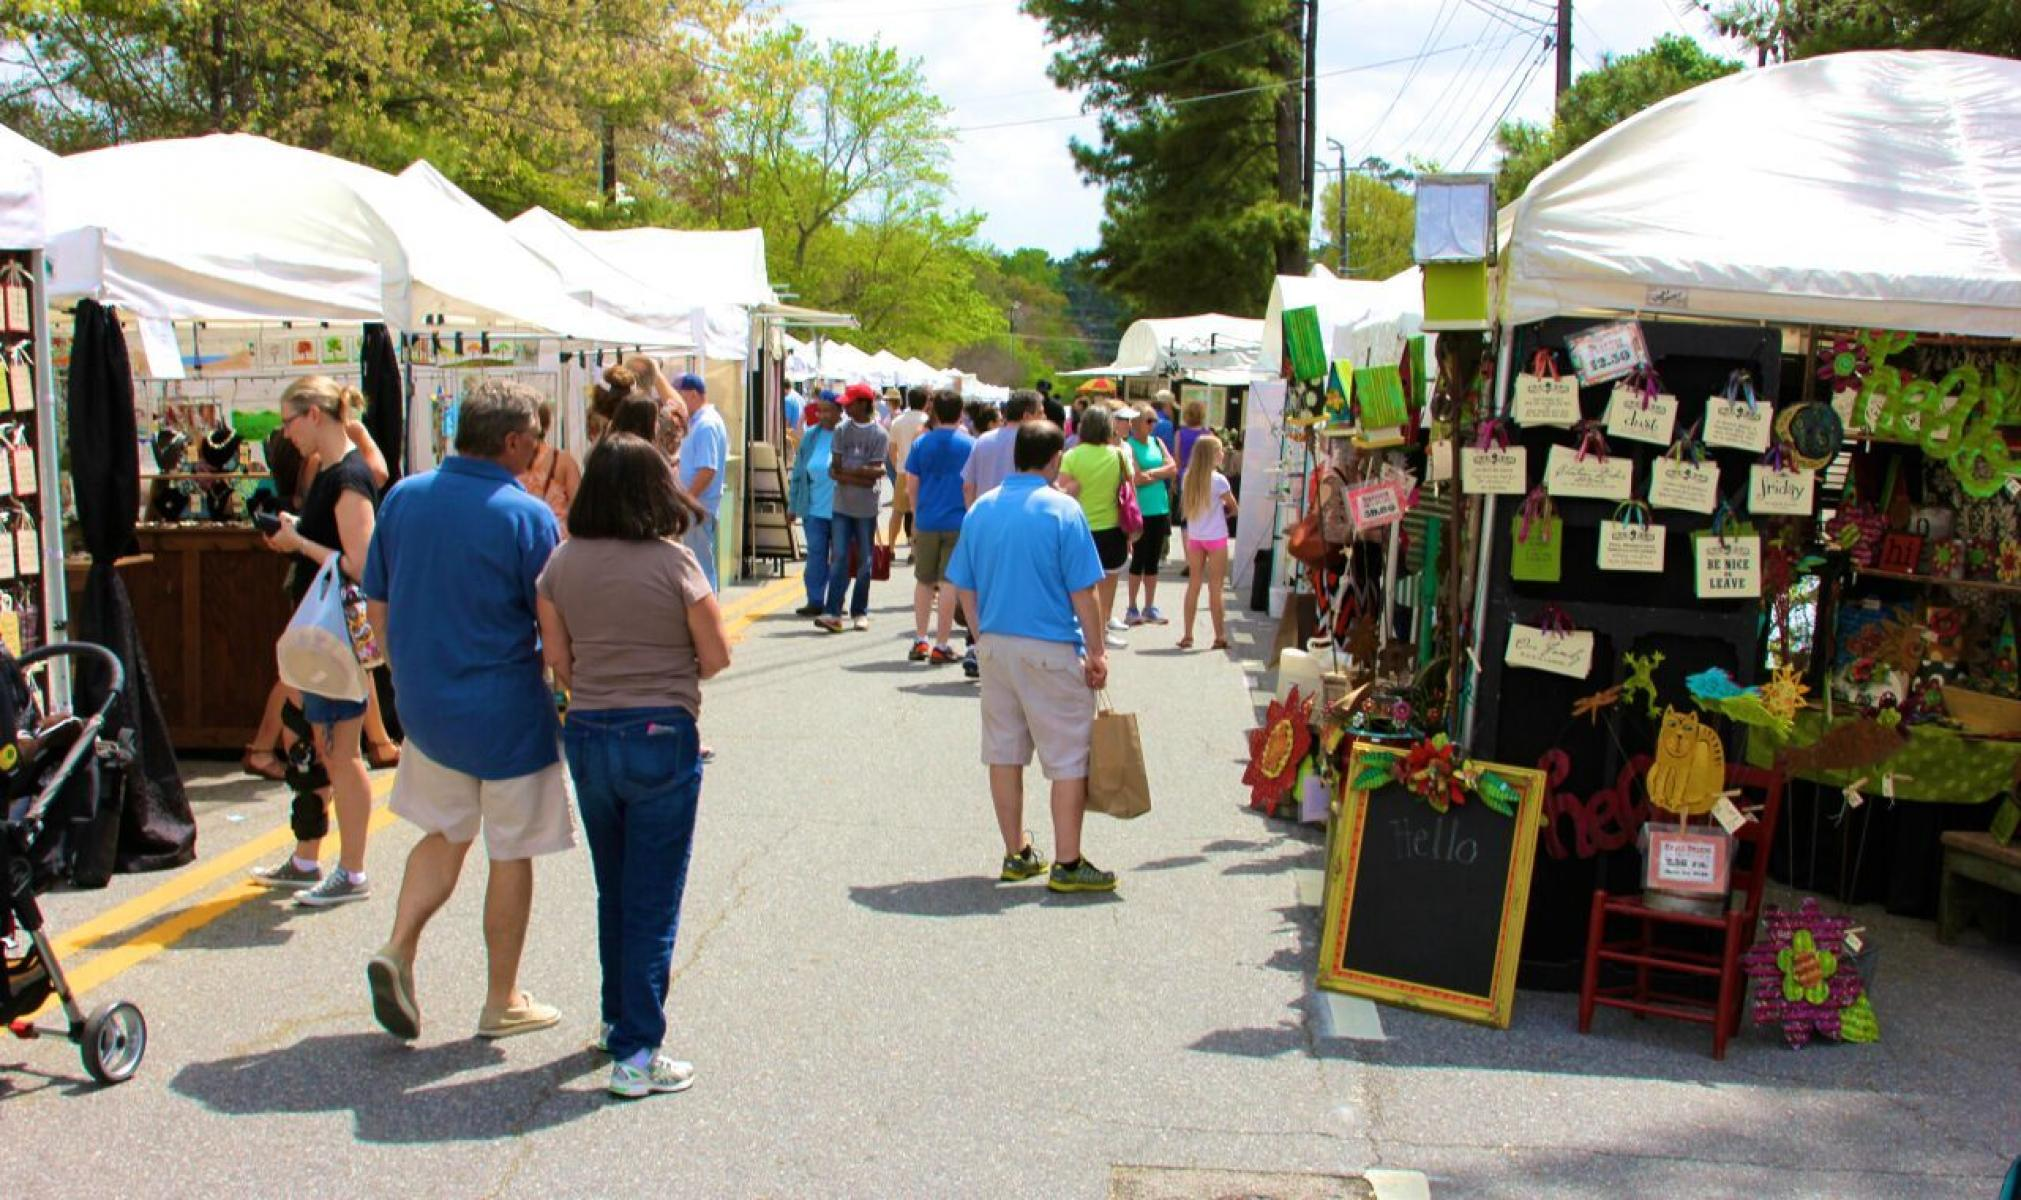 The Seventh Annual Sandy Springs Artsapalooza